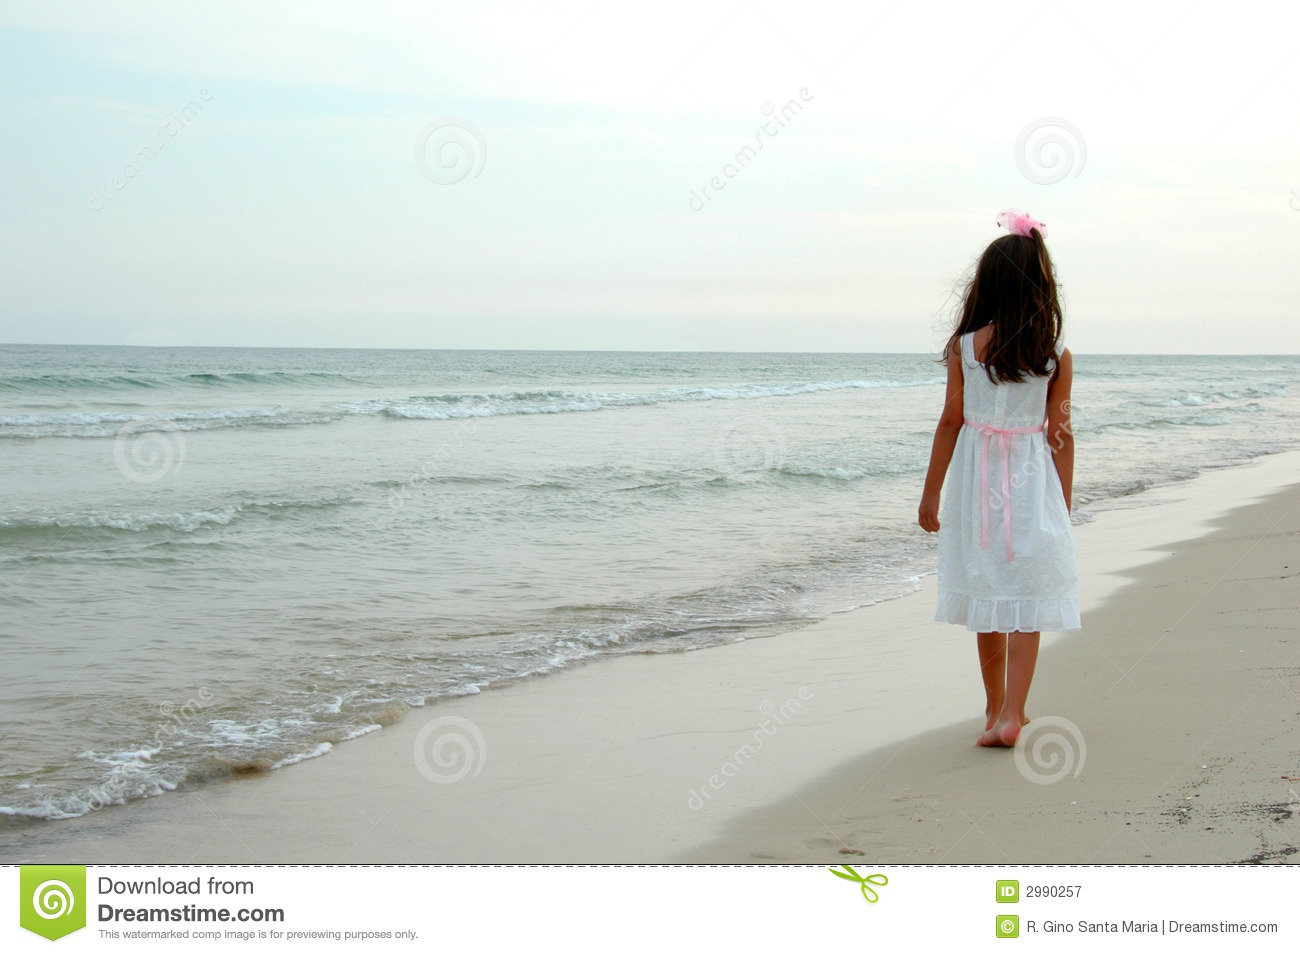 Girl walking on beach